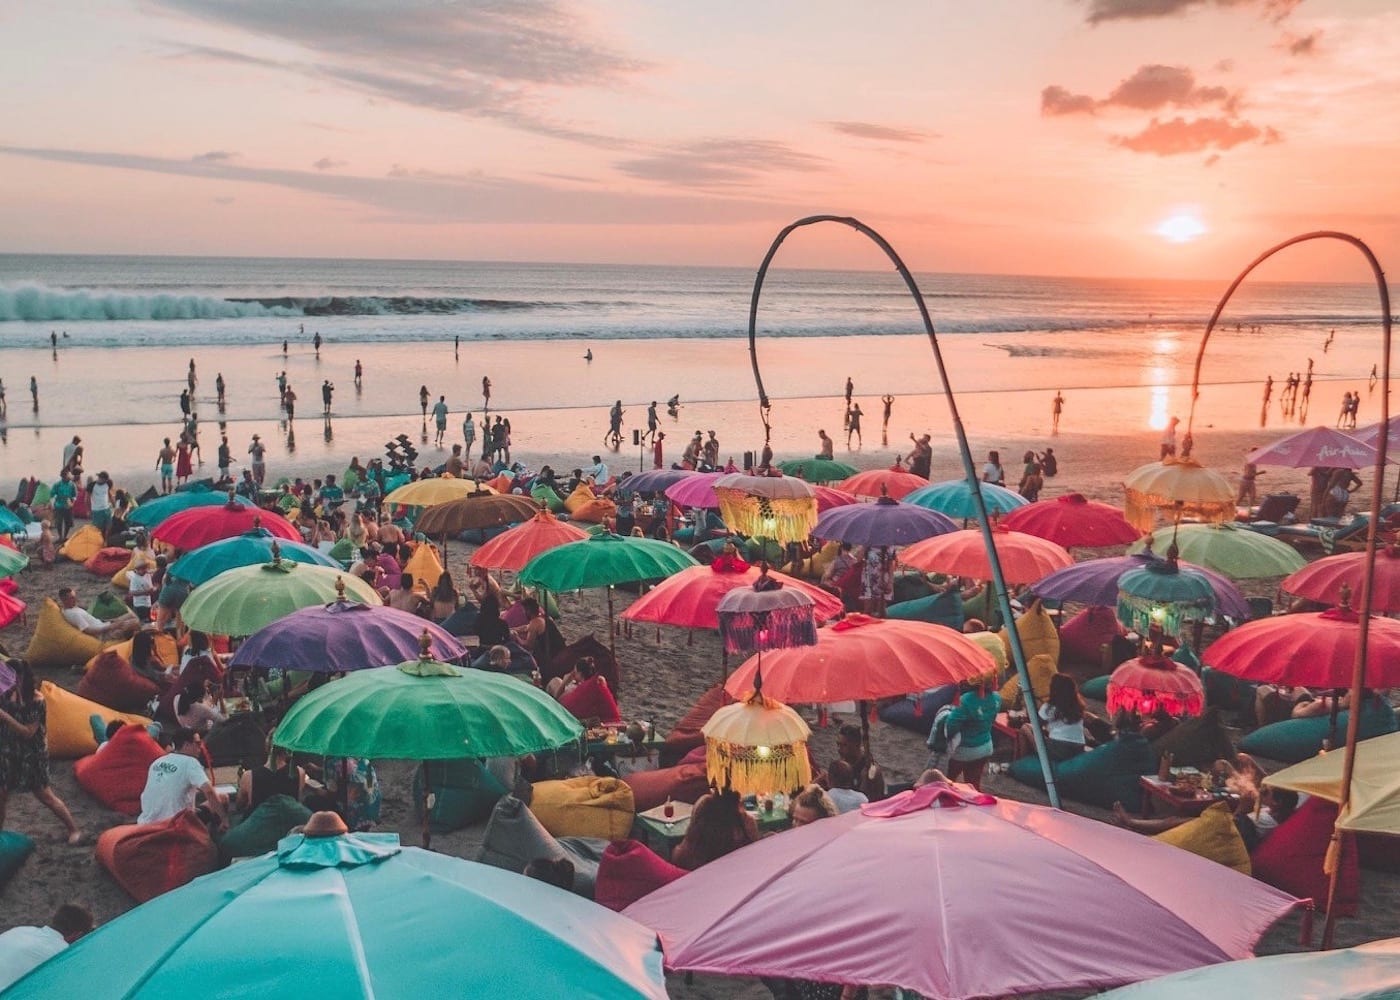 Best beaches in Bali: Where to swim, surf, soak up the sun and live the island dream